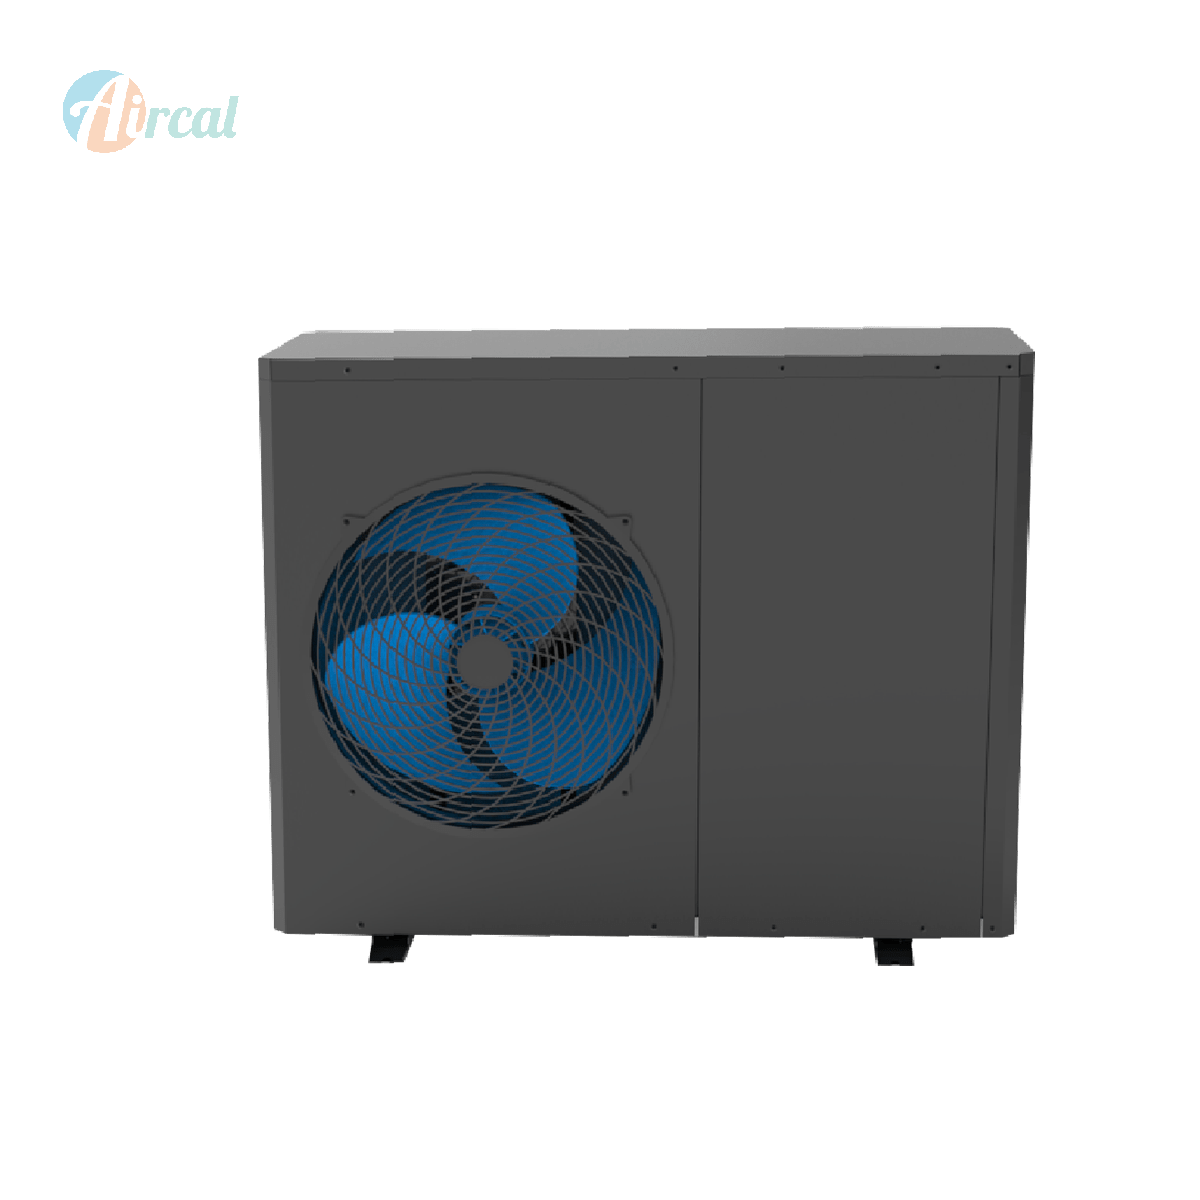 R32 R290 Monobloc Heating and Cooling Heat Pump